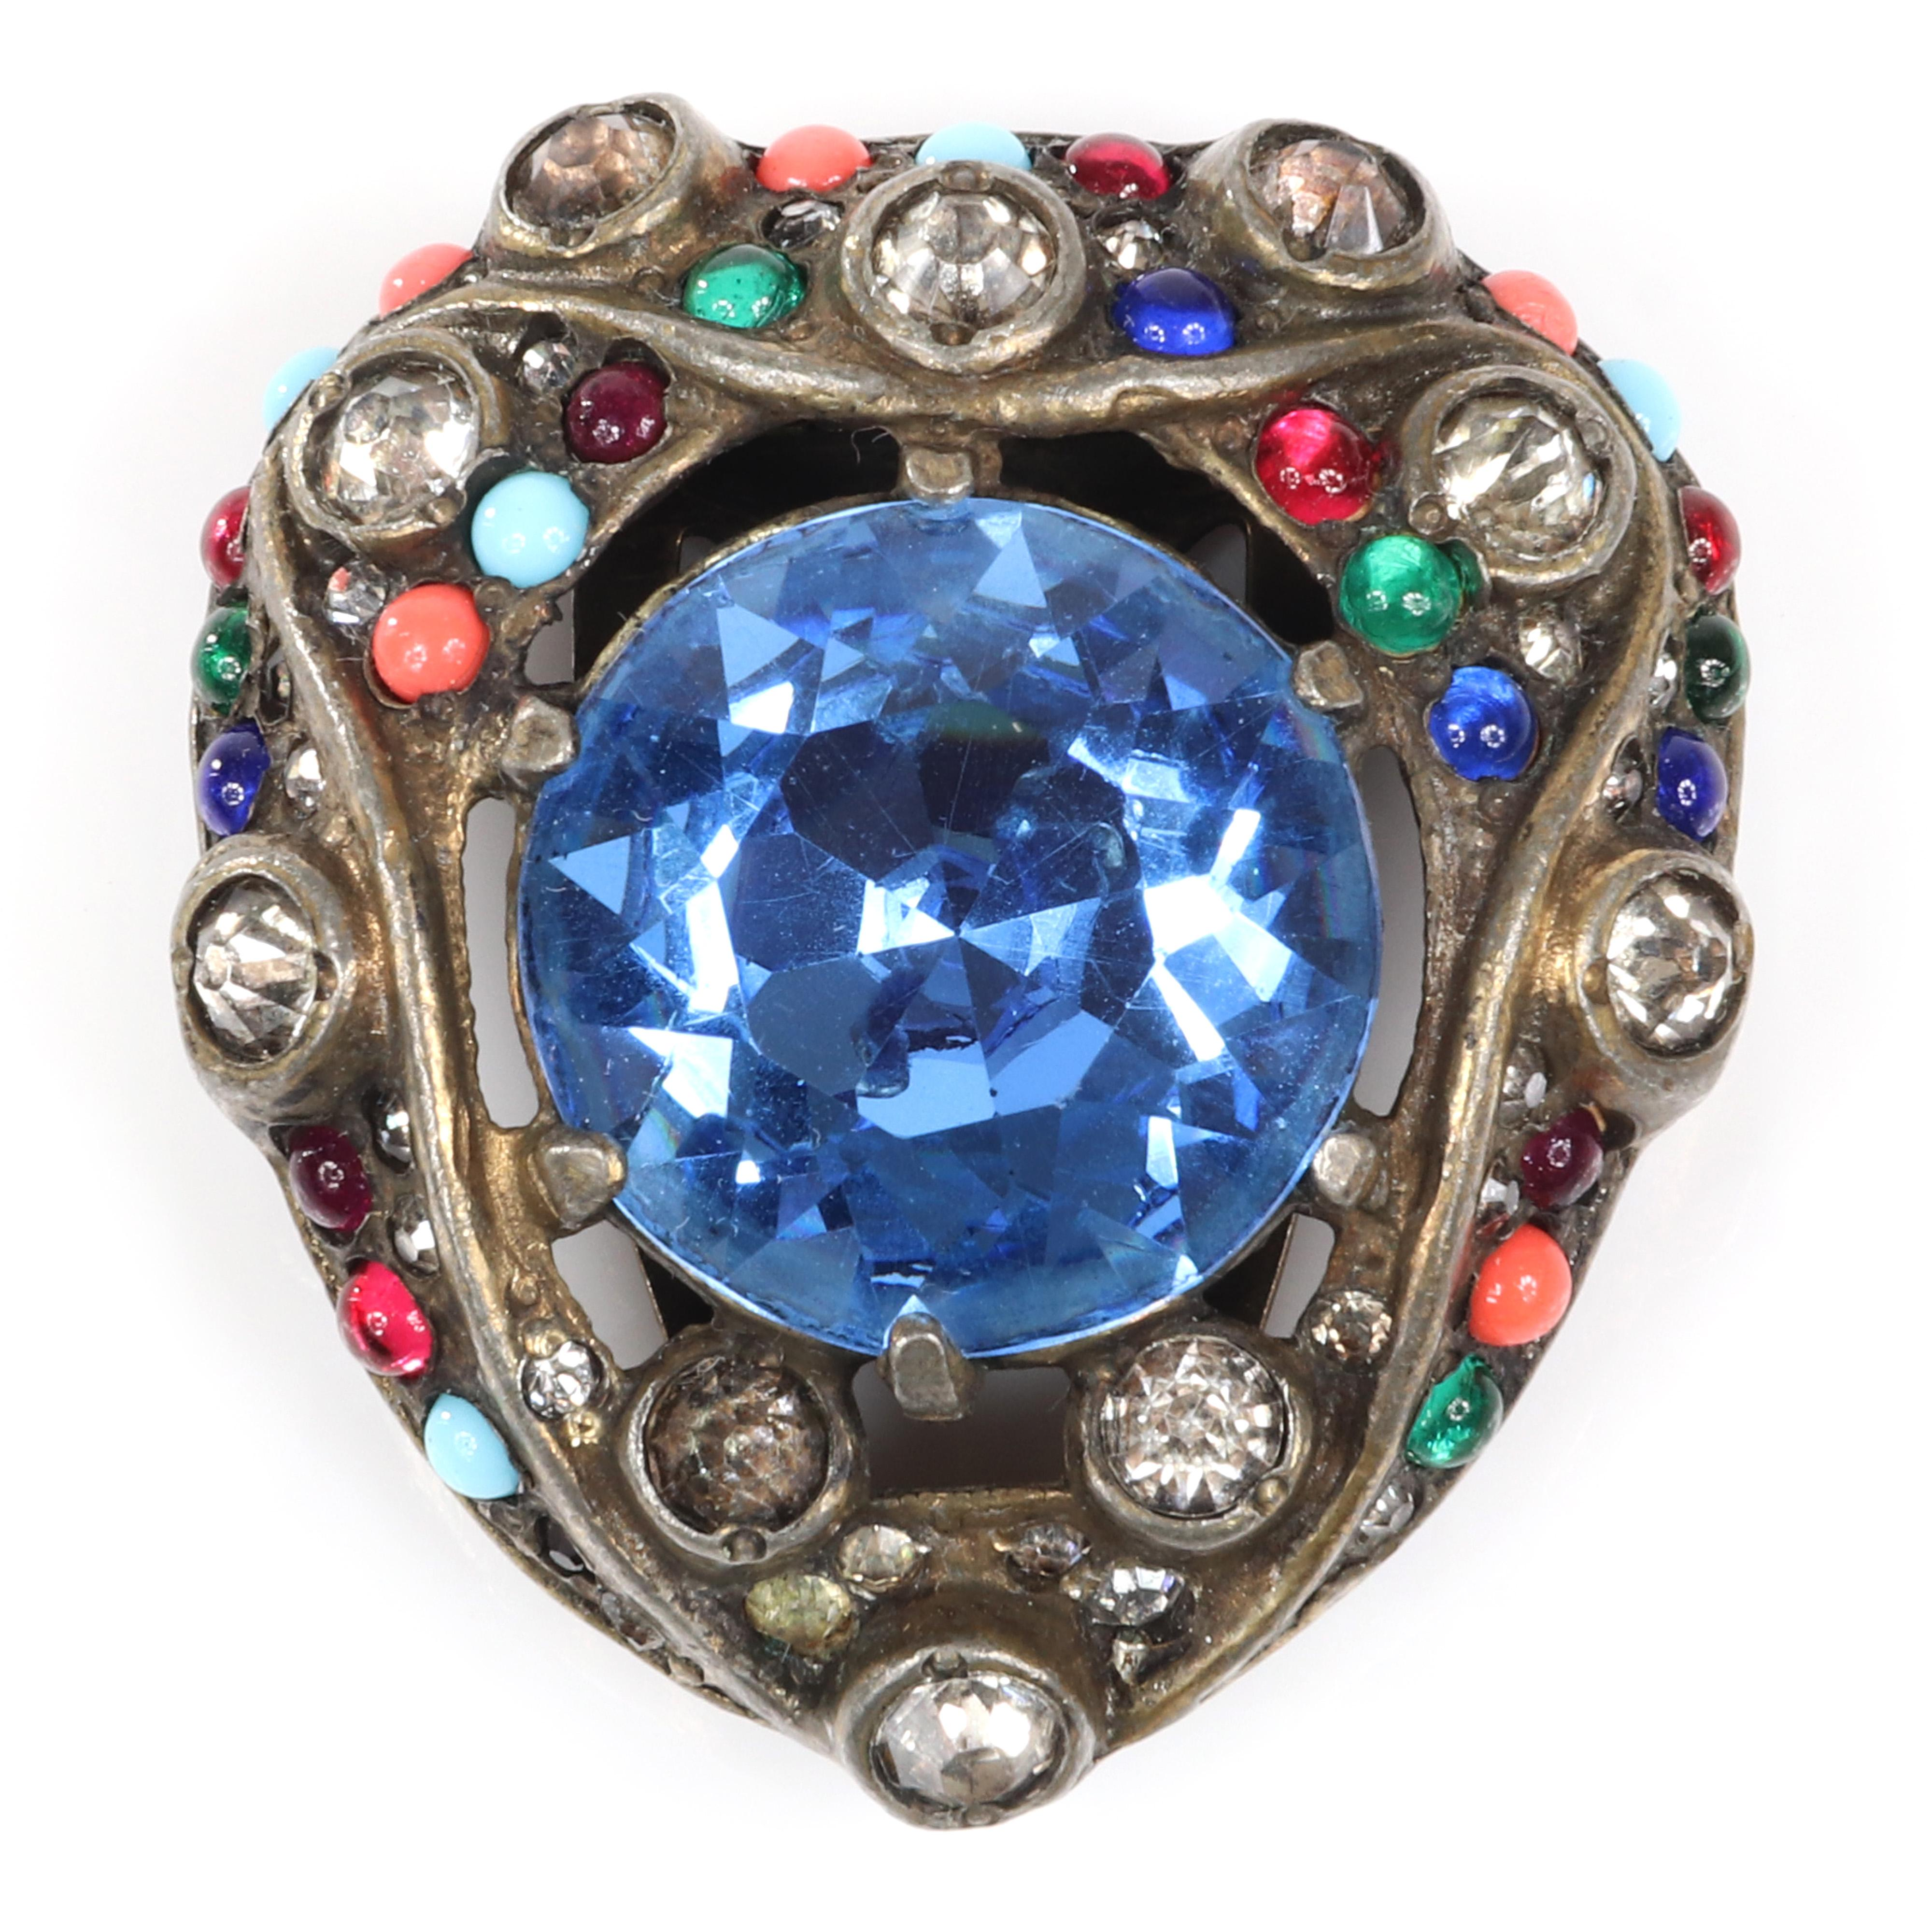 """Eisenberg Original striking dress clip with antiqued silver pot metal, a large central blue open backed crystal, bezel-set rhinestones and multi-colored glass beads, c. 1930s. 1 1/2"""" x 1 3/4"""""""